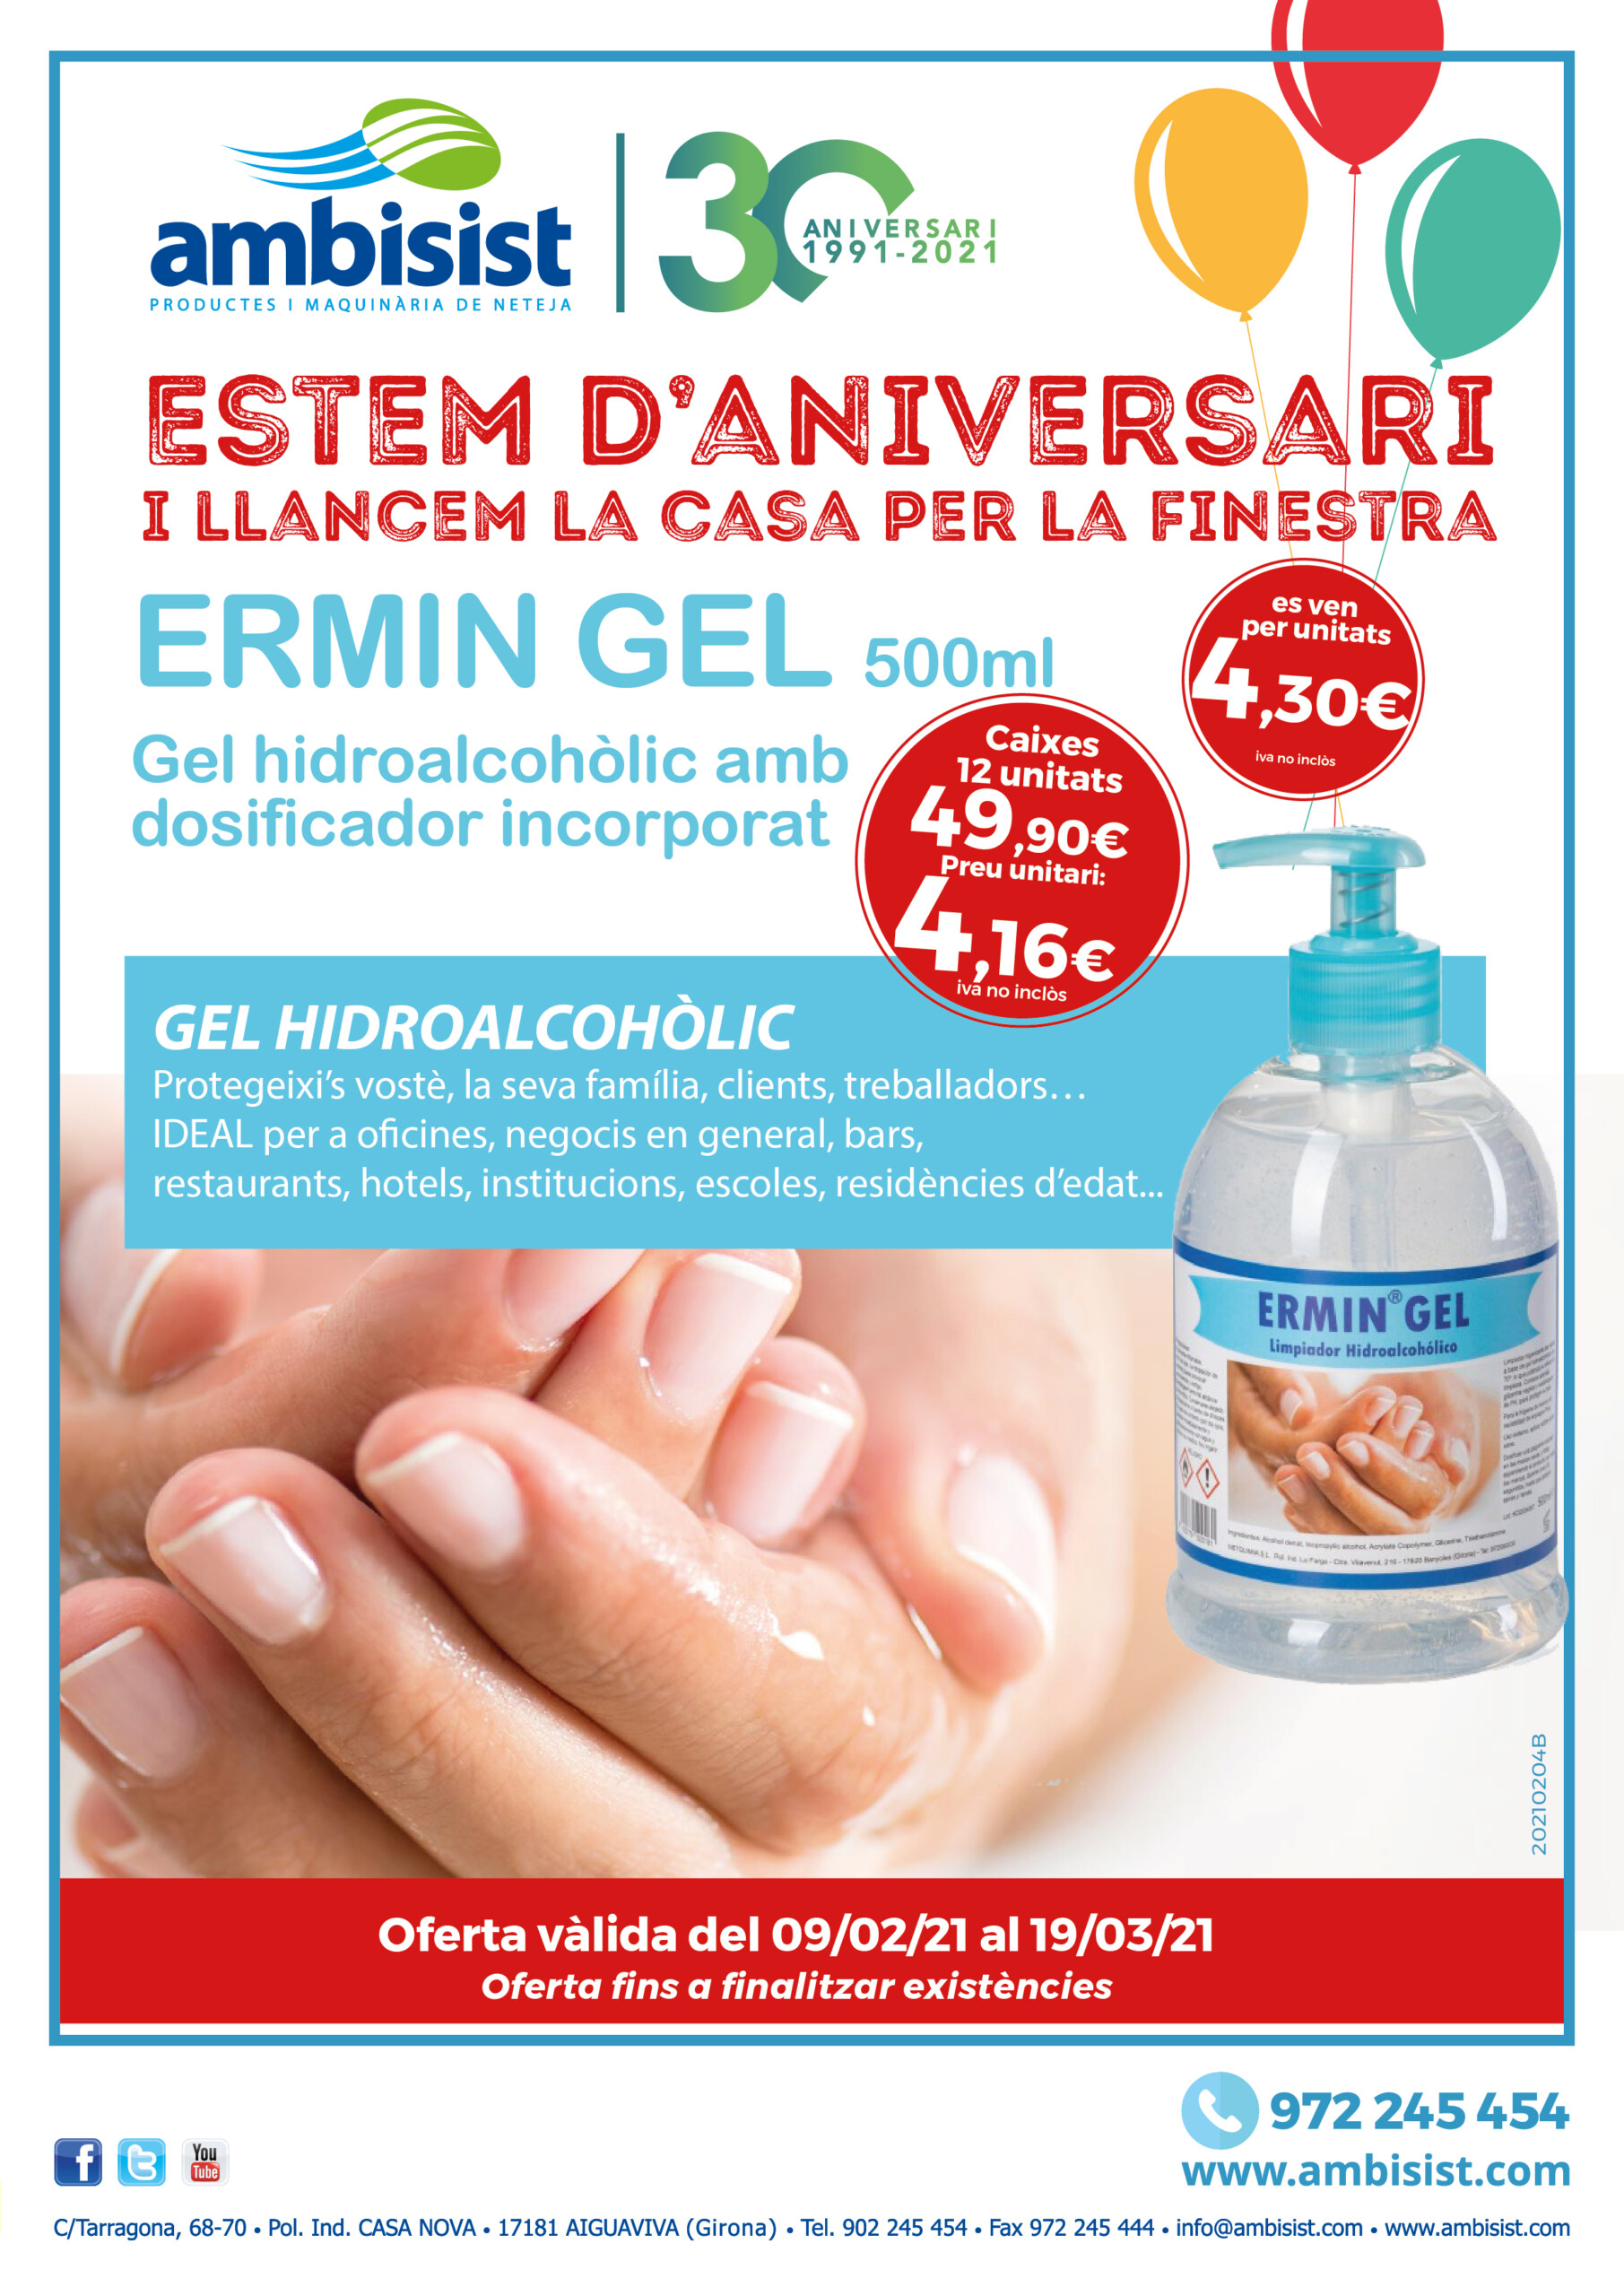 ERMIN GEL 500ml